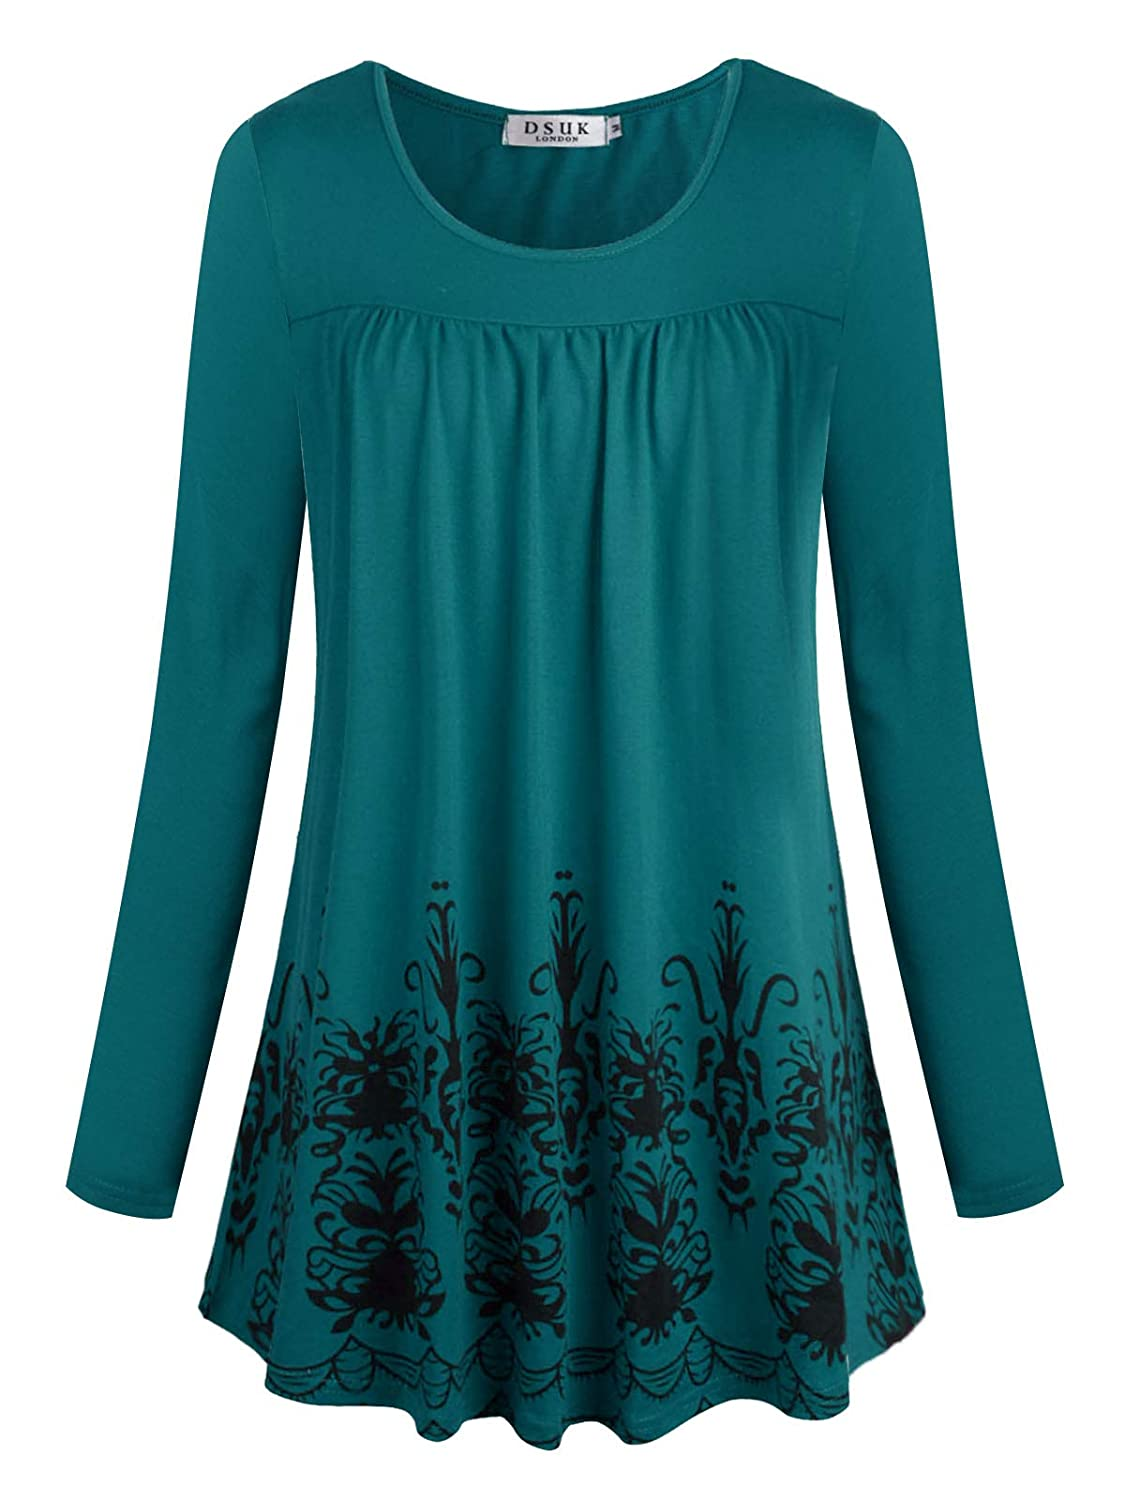 bluee DSUK Women's Round Neck Short Sleeve Casual Floral Pleated Loose Fit Tunic Tops